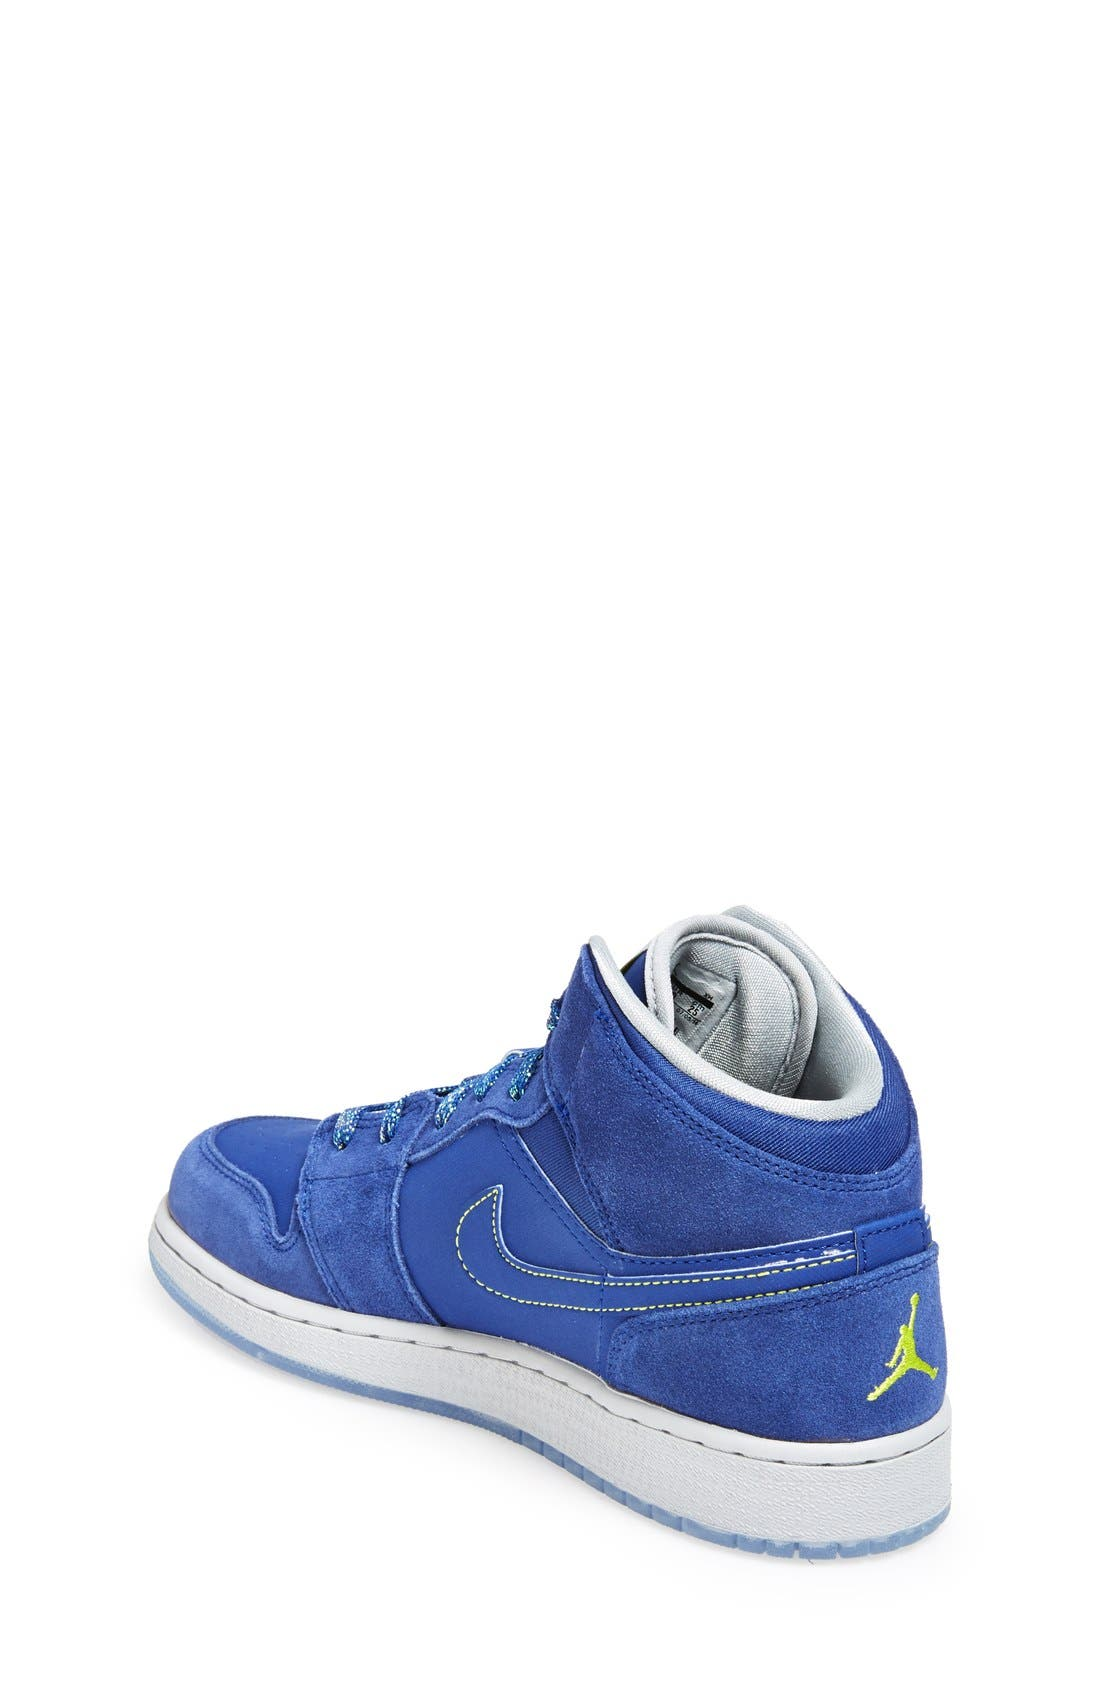 Nike 'Air Jordan 1 Mid' Sneaker,                             Alternate thumbnail 14, color,